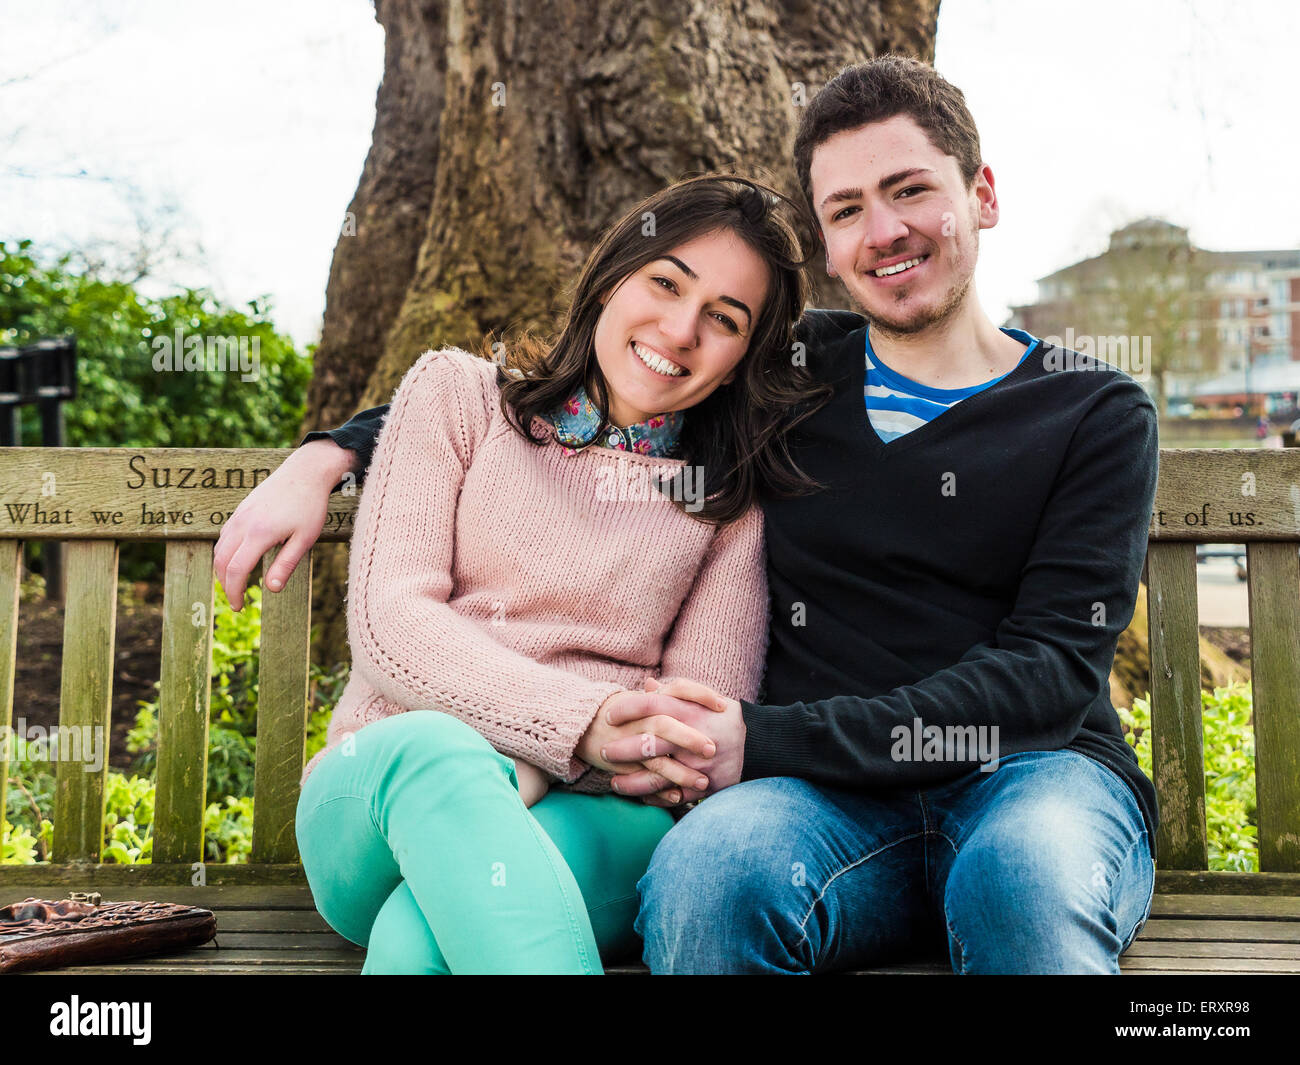 Young Heterosexual Couple Sitting on a Park Bench Enjoying a Beautiful Sunny Day and Smiling Looking at the Camera - Stock Image